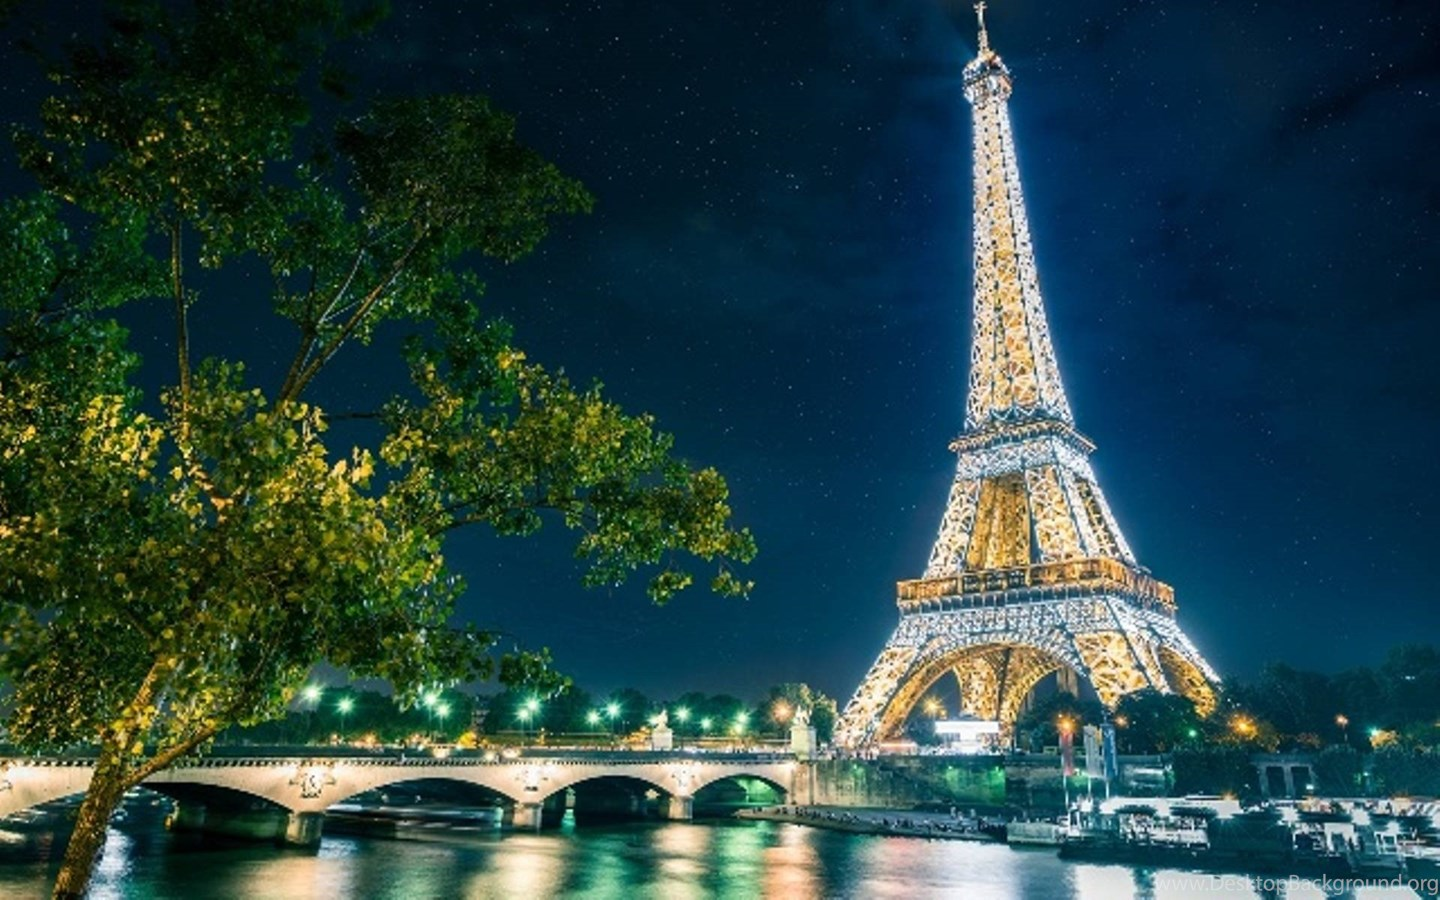 an examination of the eiffel tower a trademark of paris france